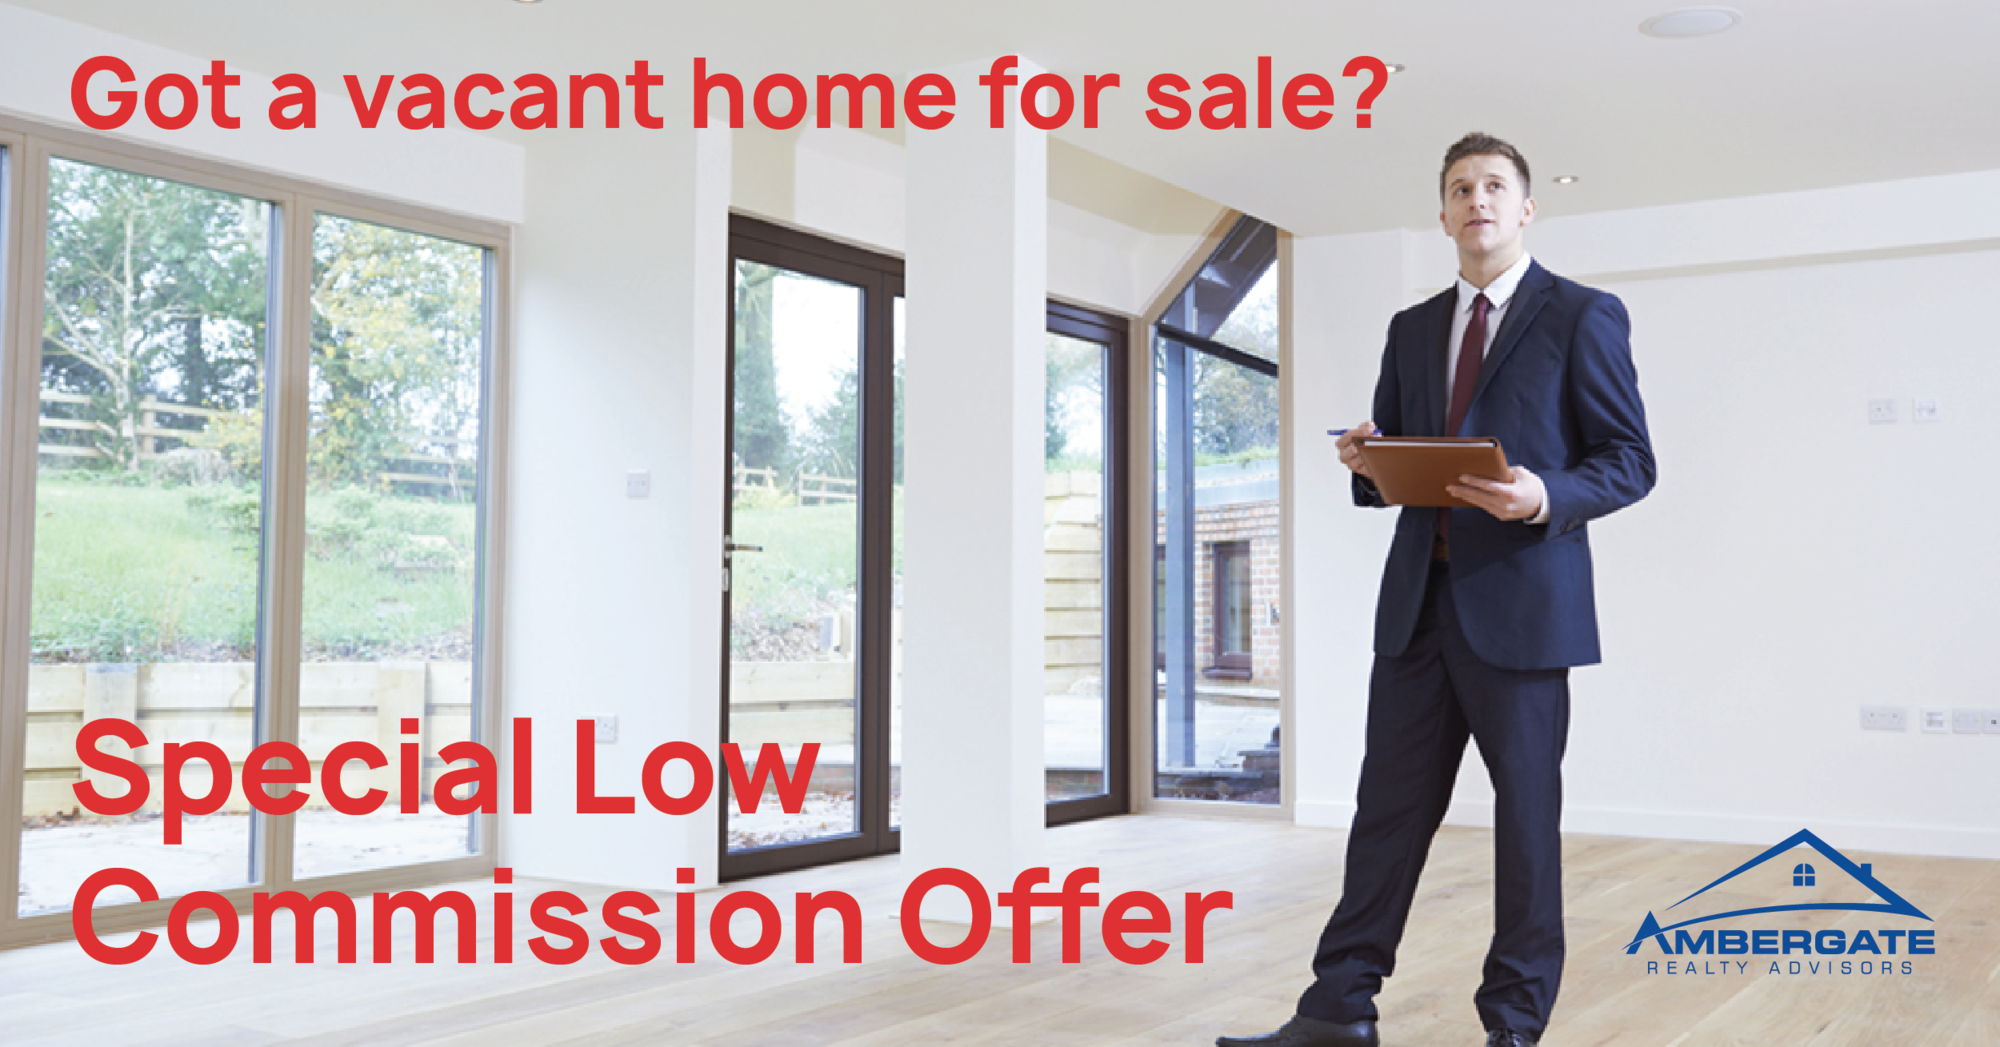 Ambergate Realty Low Commission Offer for Vacant Homes